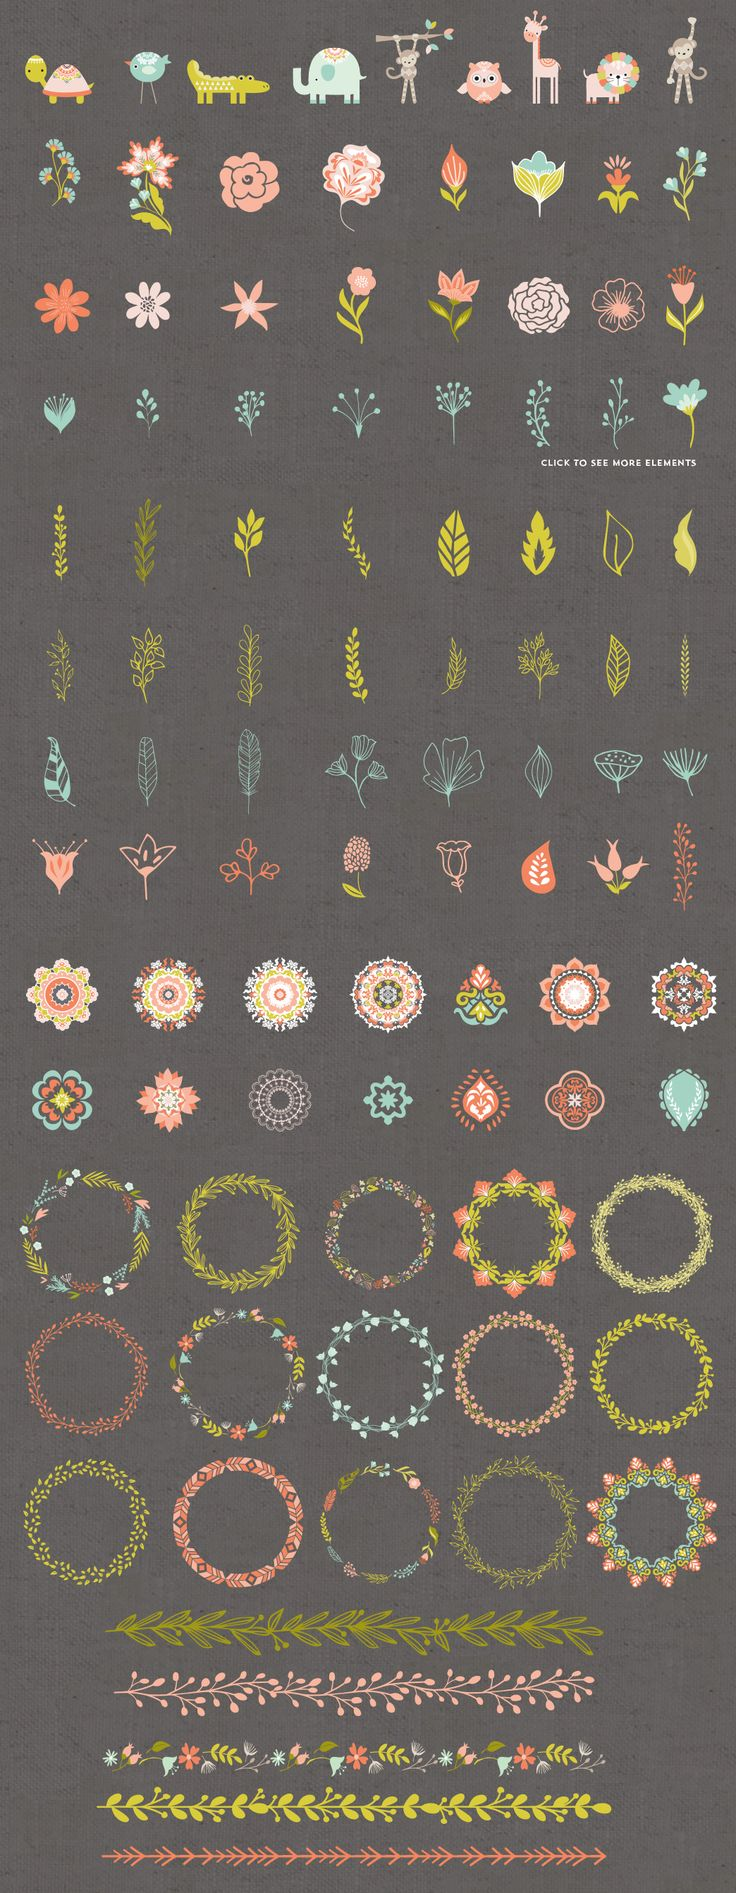 Wild and Free Vector Graphics by Cocoa Mint on @creativemarket